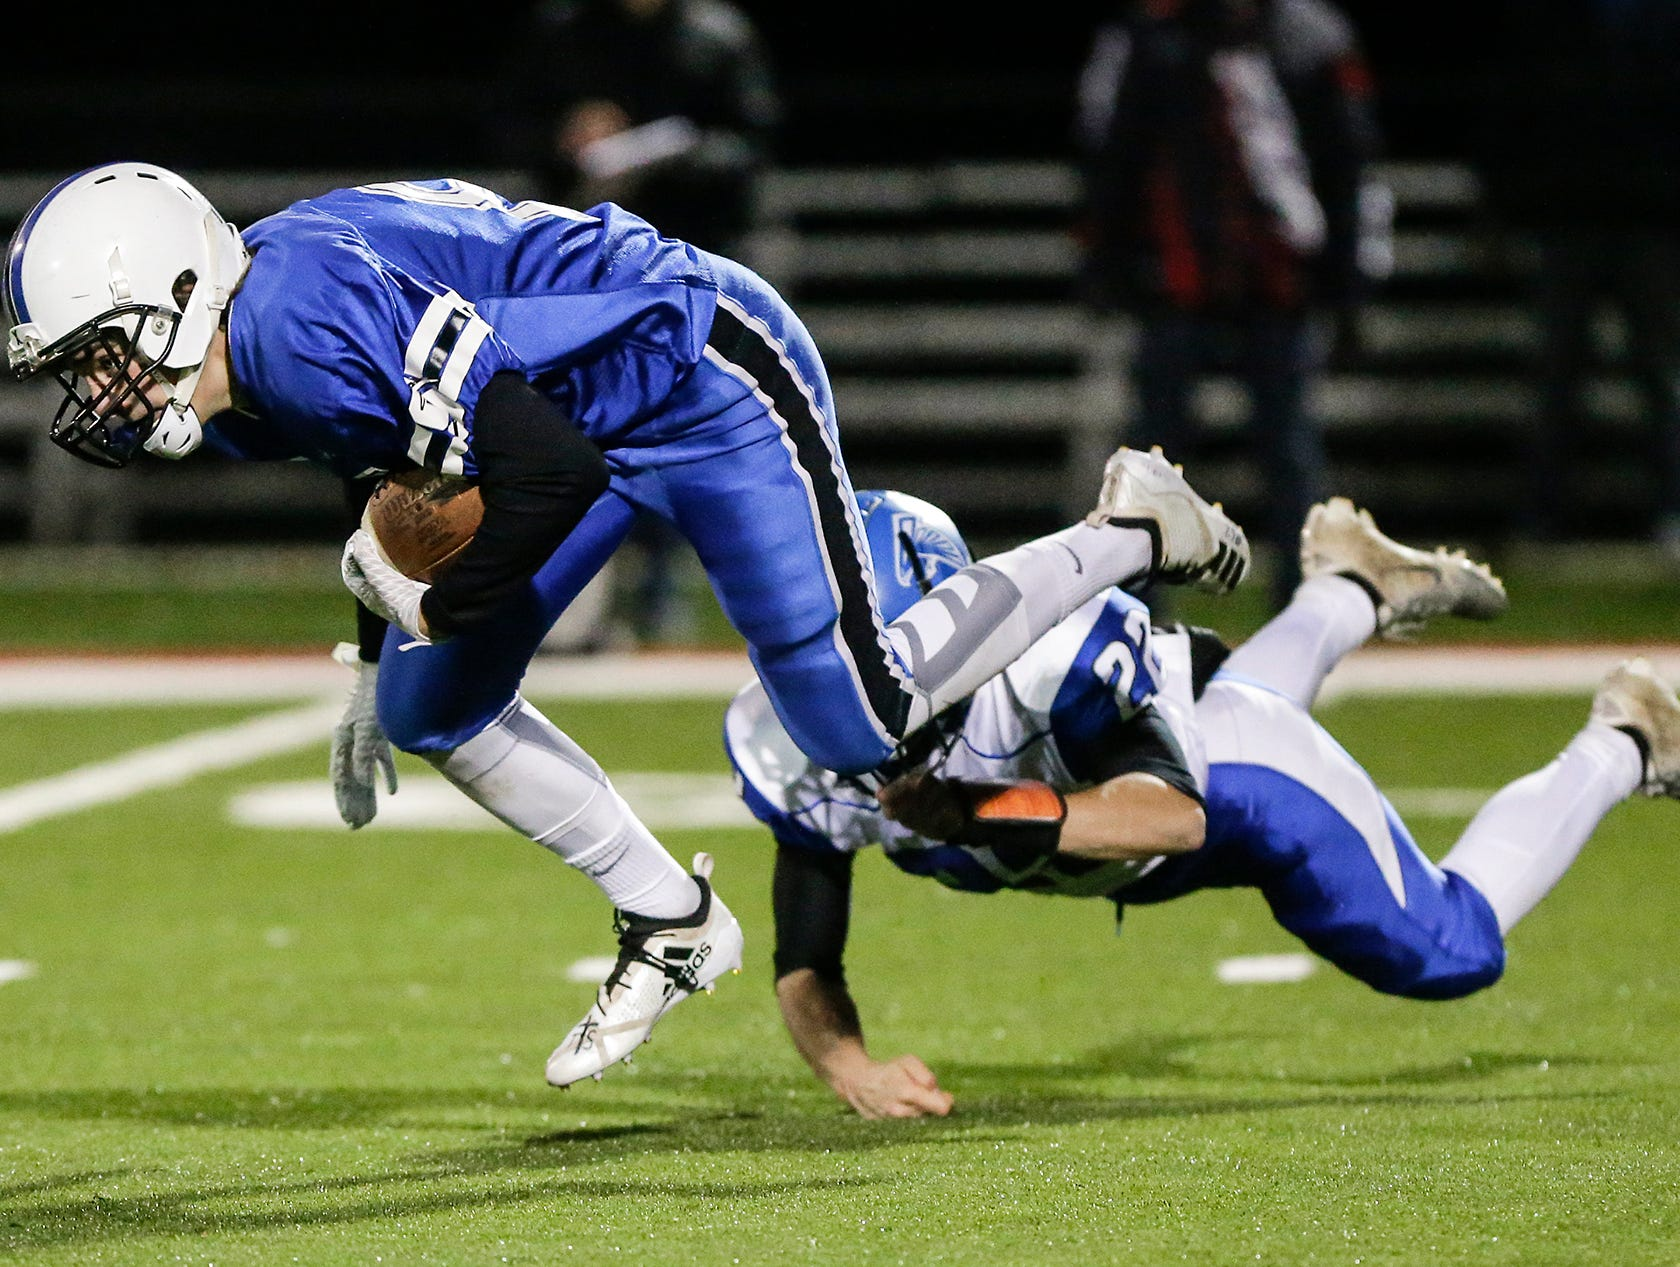 St. Mary's Springs Academy football's David Mueller gets tripped up by Amherst High School's Isaac Premus Friday, November 2, 2018 during their WIAA division 5 level 3 playoff game played in Lomira, Wisconsin. Springs won the game 12-0. Doug Raflik/USA TODAY NETWORK-Wisconsin